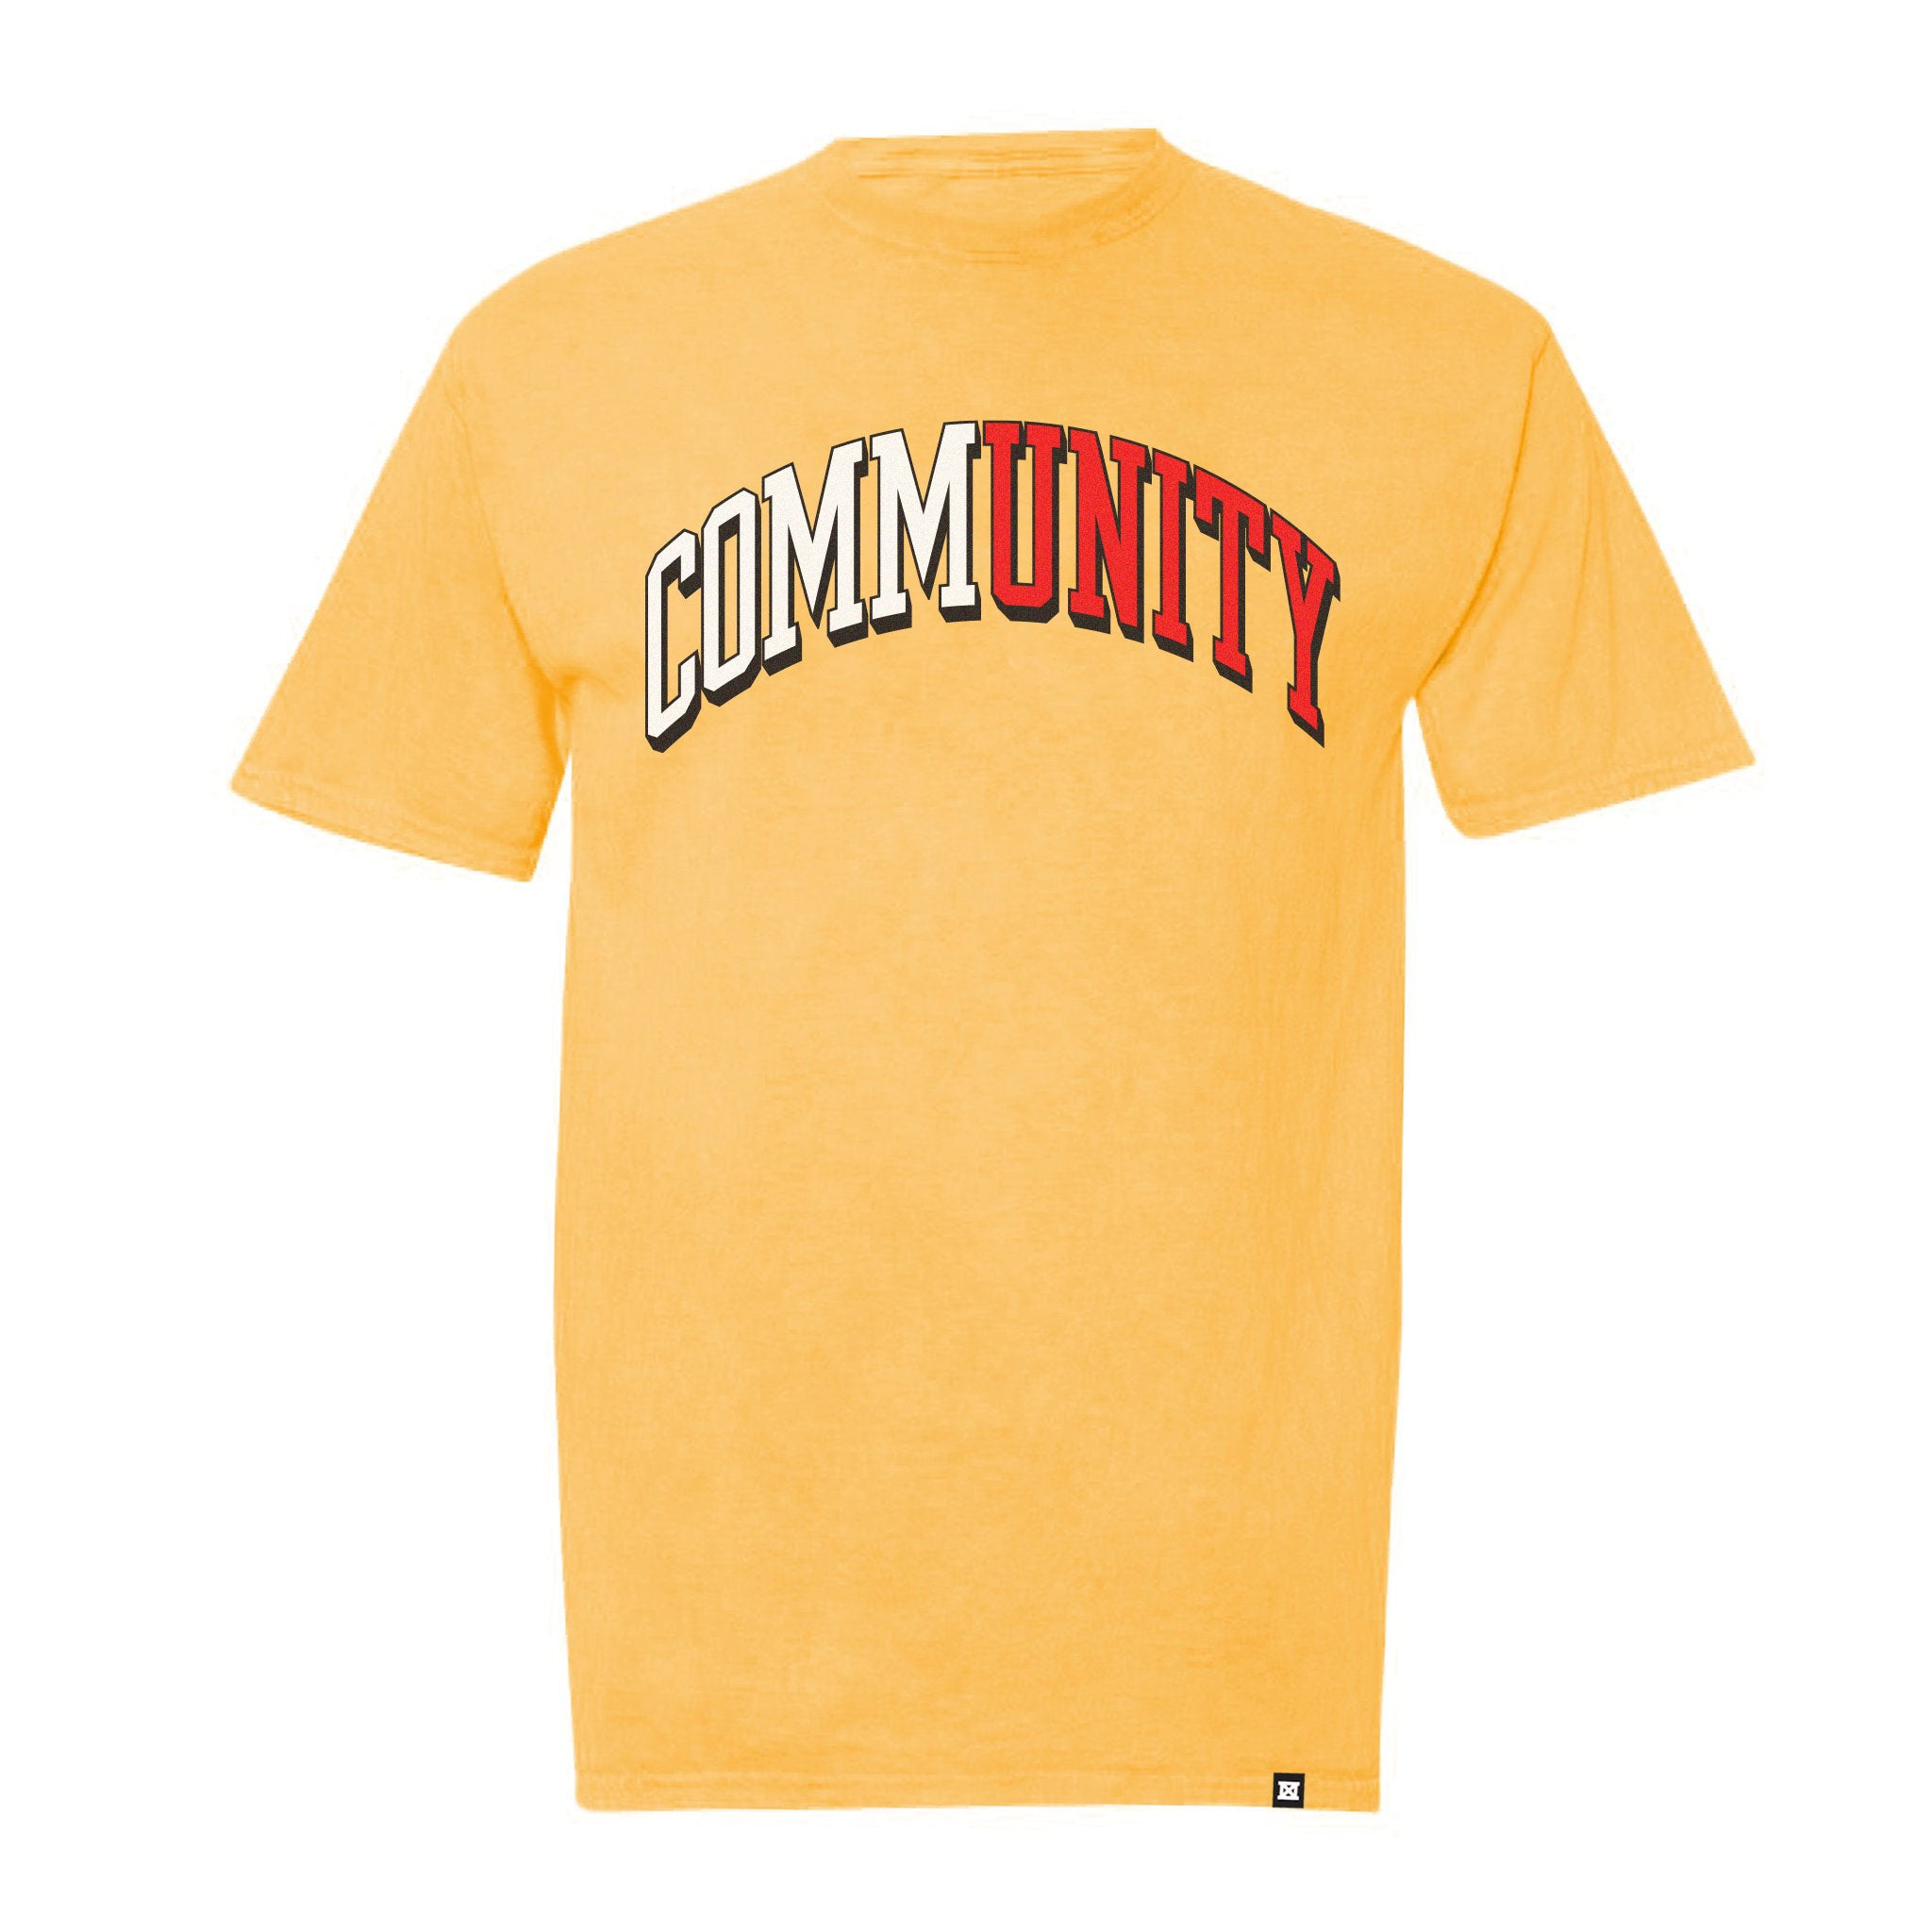 COMMUNITY T-Shirt - Yellow - Limited Stock